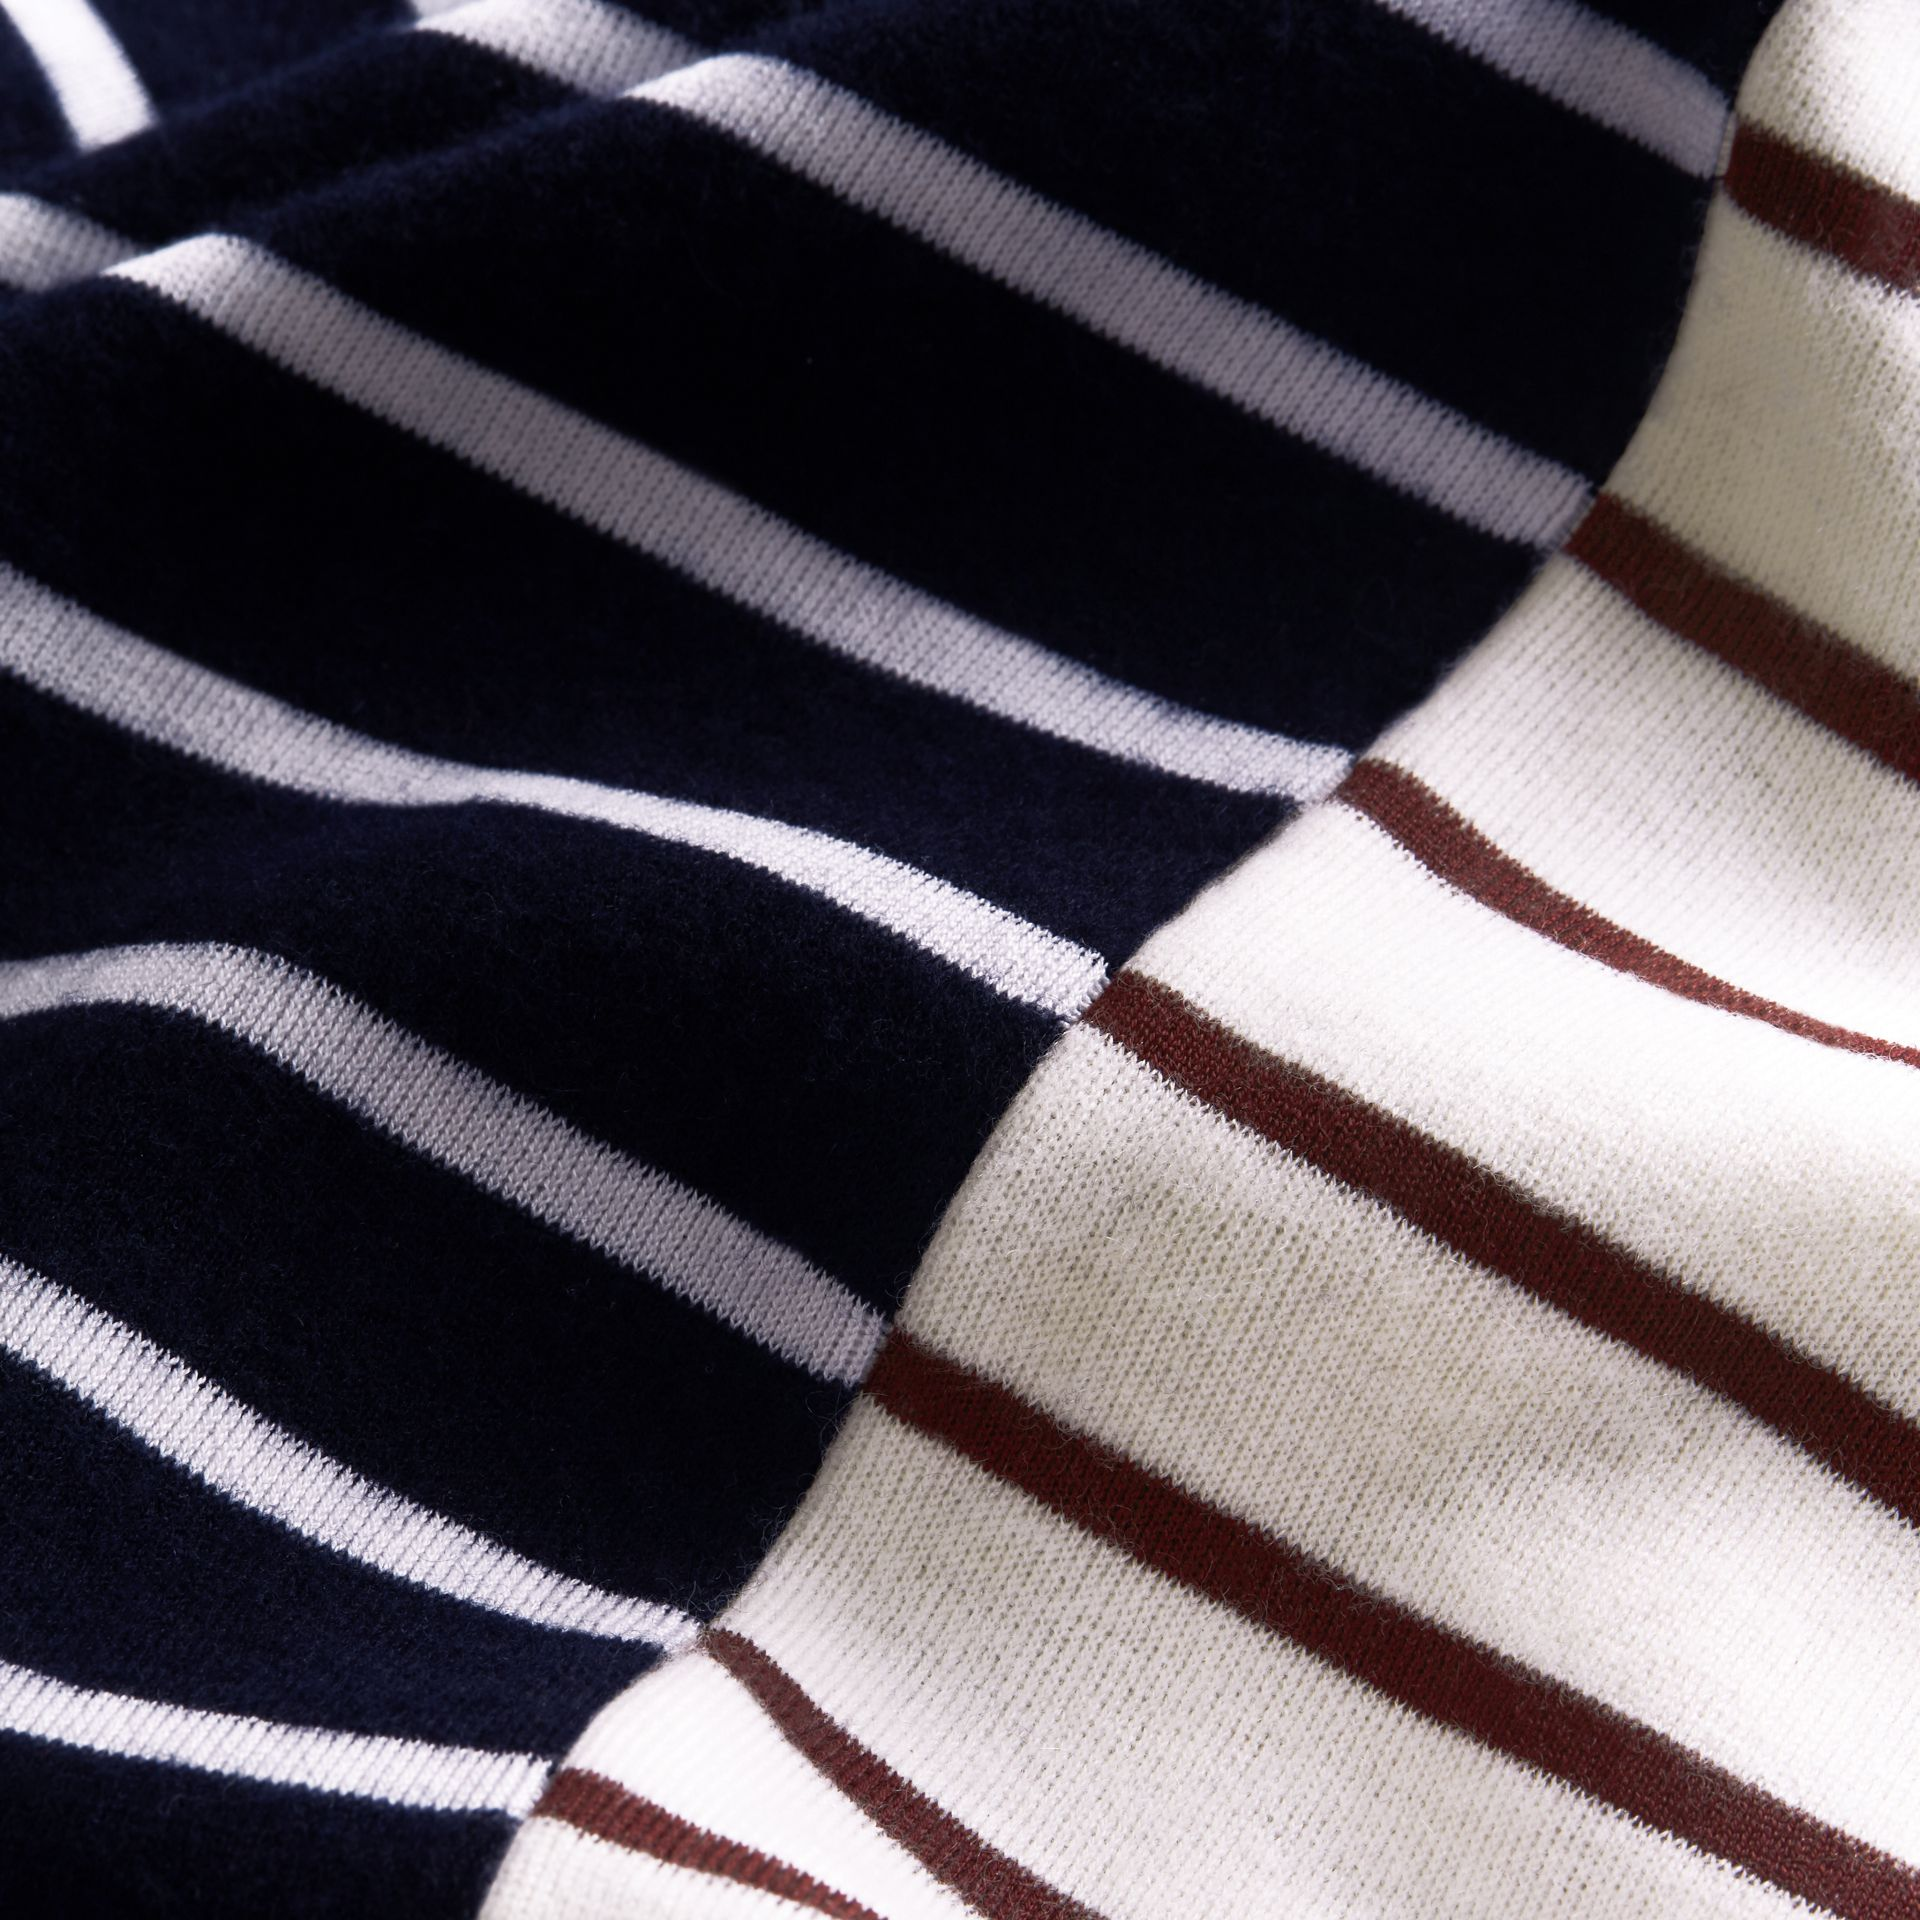 Contrast Stripe Cashmere Blend Sweater in Navy - Men | Burberry - gallery image 2